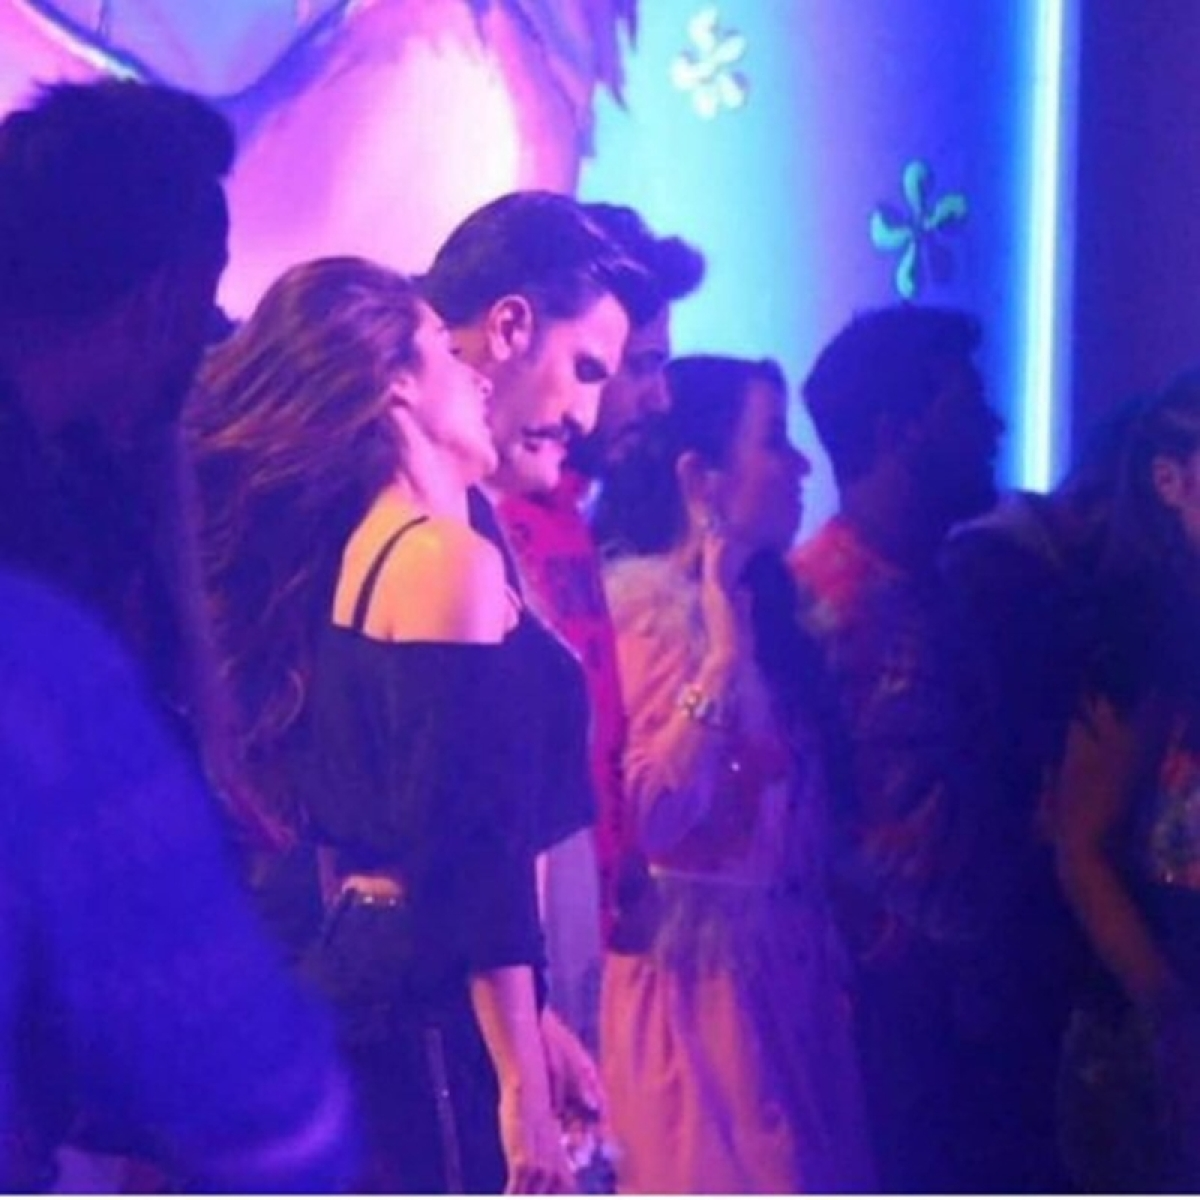 Glimpses from the sets! Ranveer Singh and Sara Ali Khan shoot for a peppy dance number for Simmba